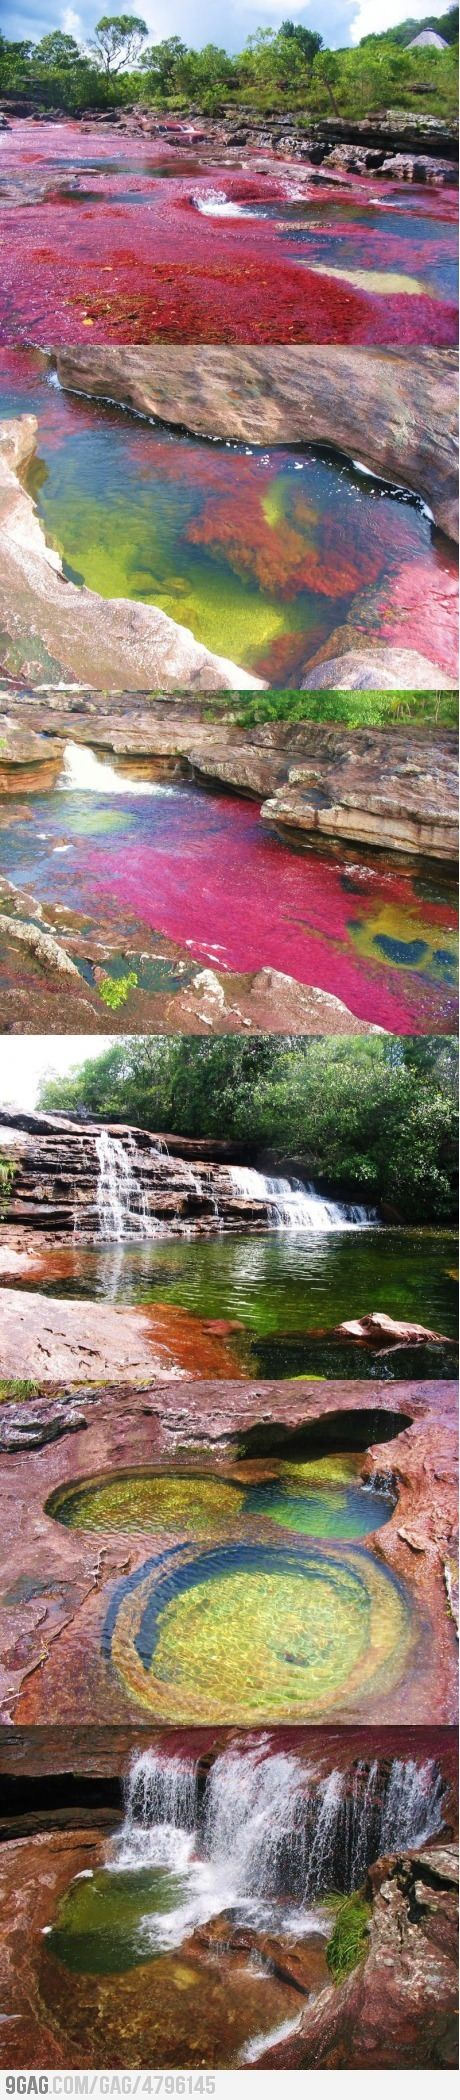 Seven Colors River in Colombia